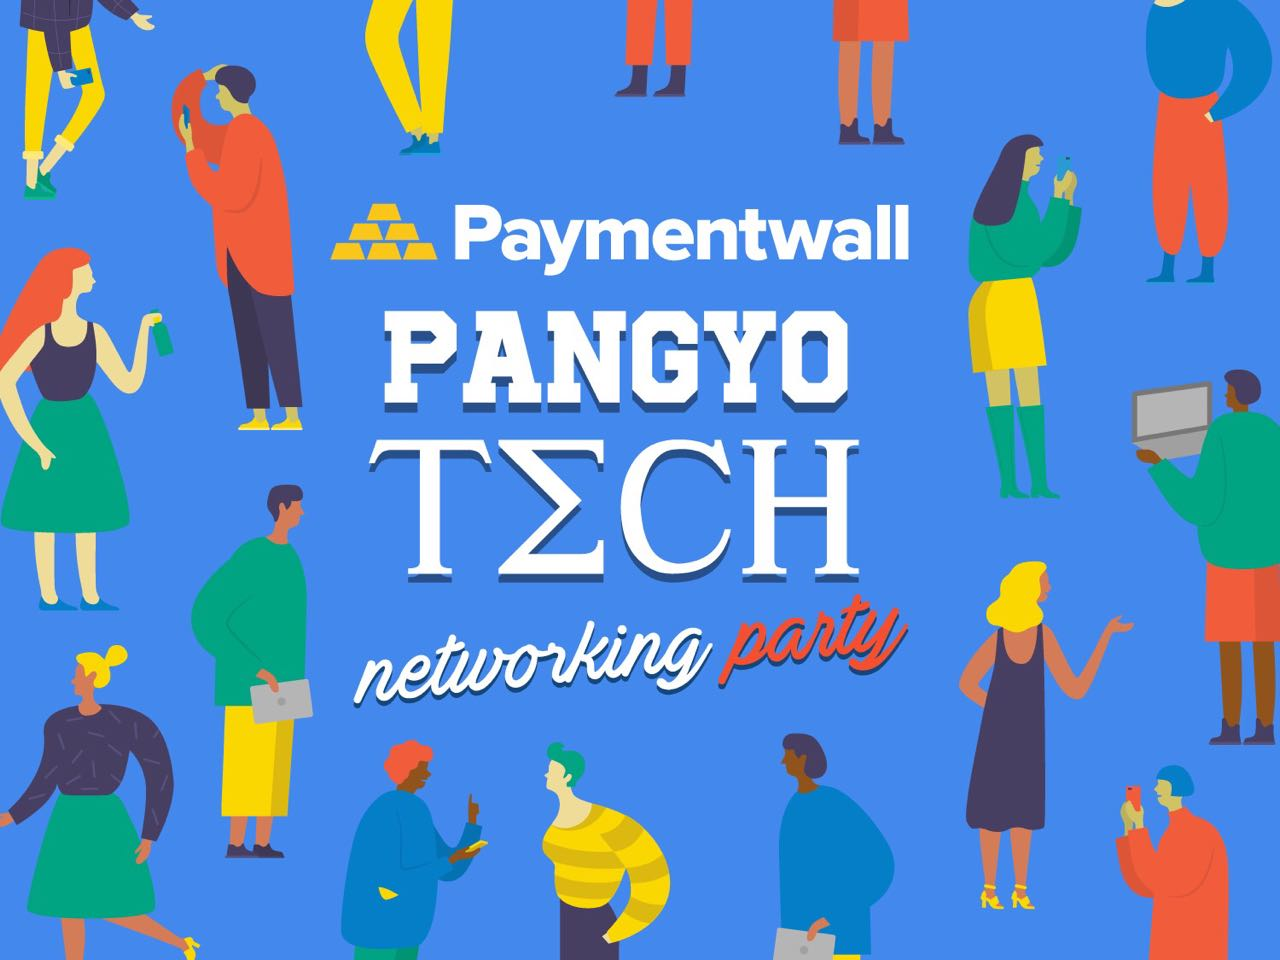 You are invited to the most anticipated tech gathering of the year!